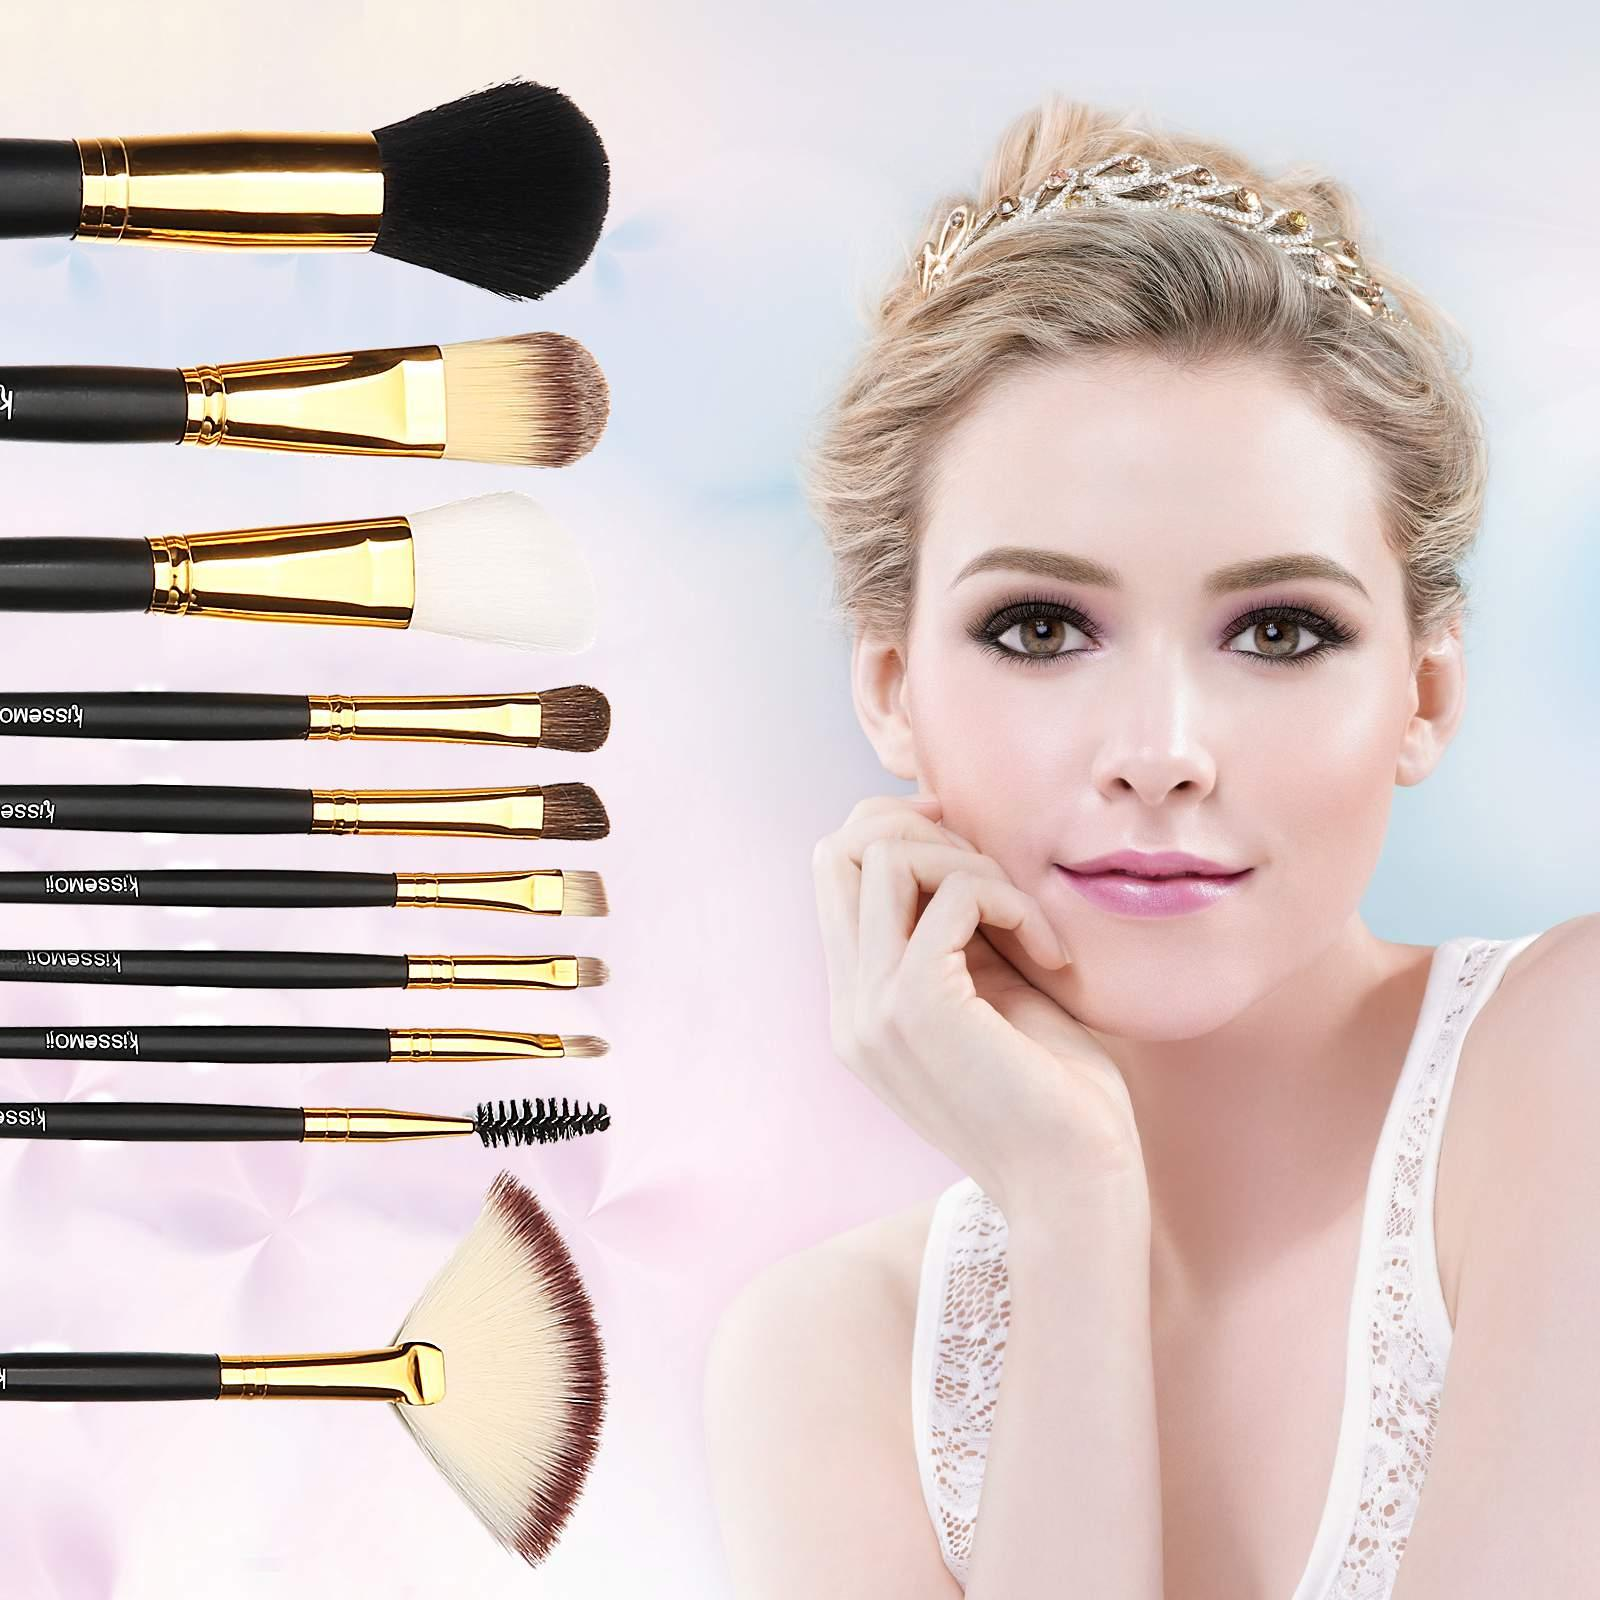 10 Pieces Premium Makeup Brushes Set, Synthetic Make Up Brushes for Powder Liquid Cream Makeup, Makeup Brushes Kit with a Travel Pouch